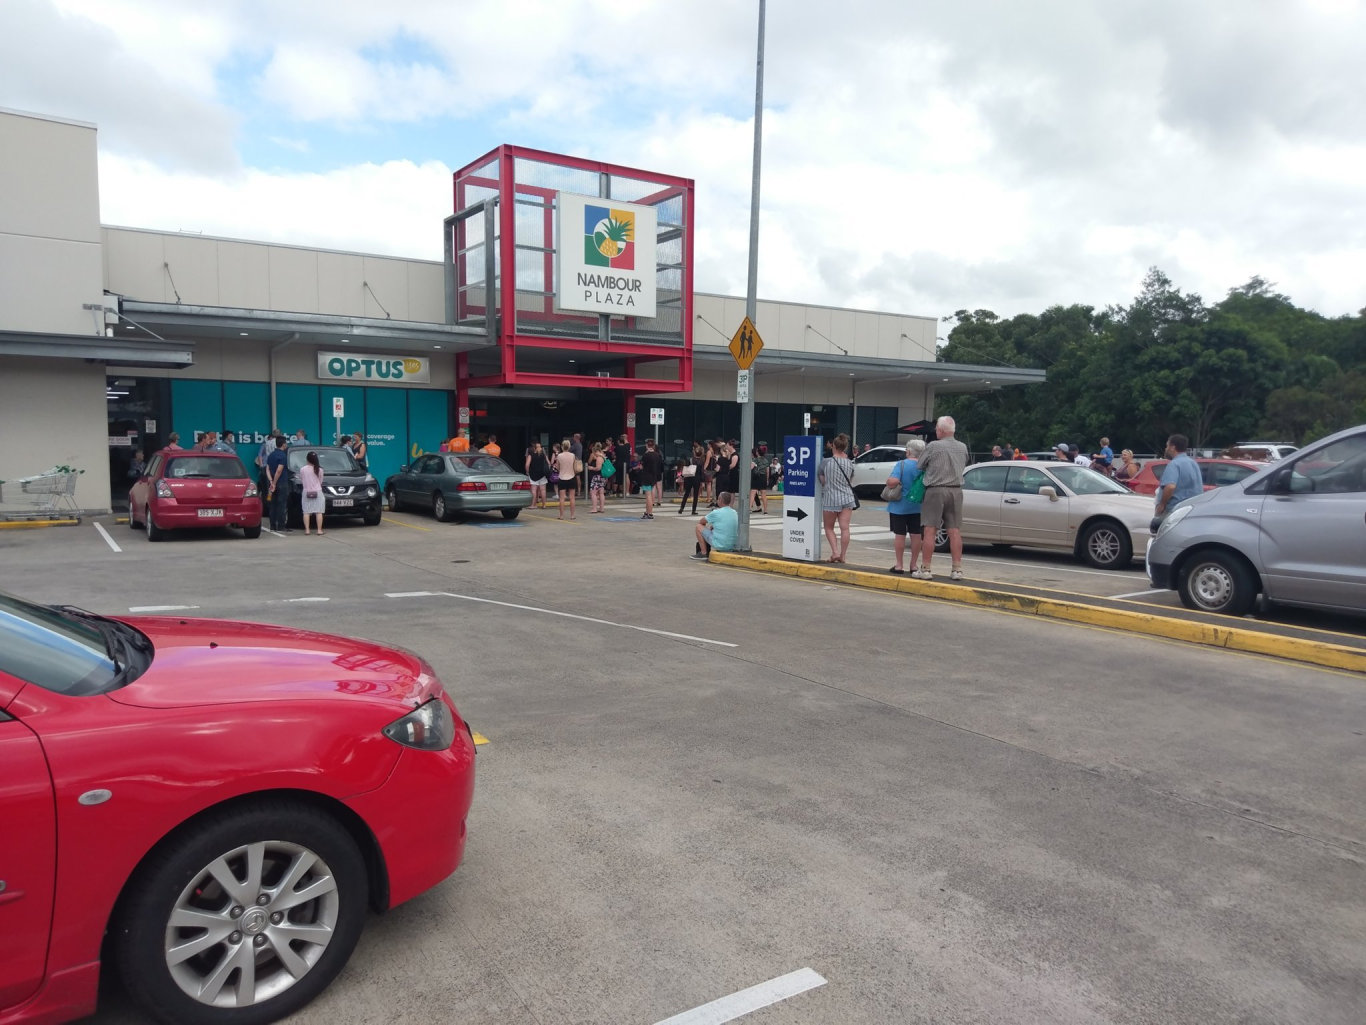 EVACUATION: Nambour Plaza was evacuated this morning after a fire alarm sounded.